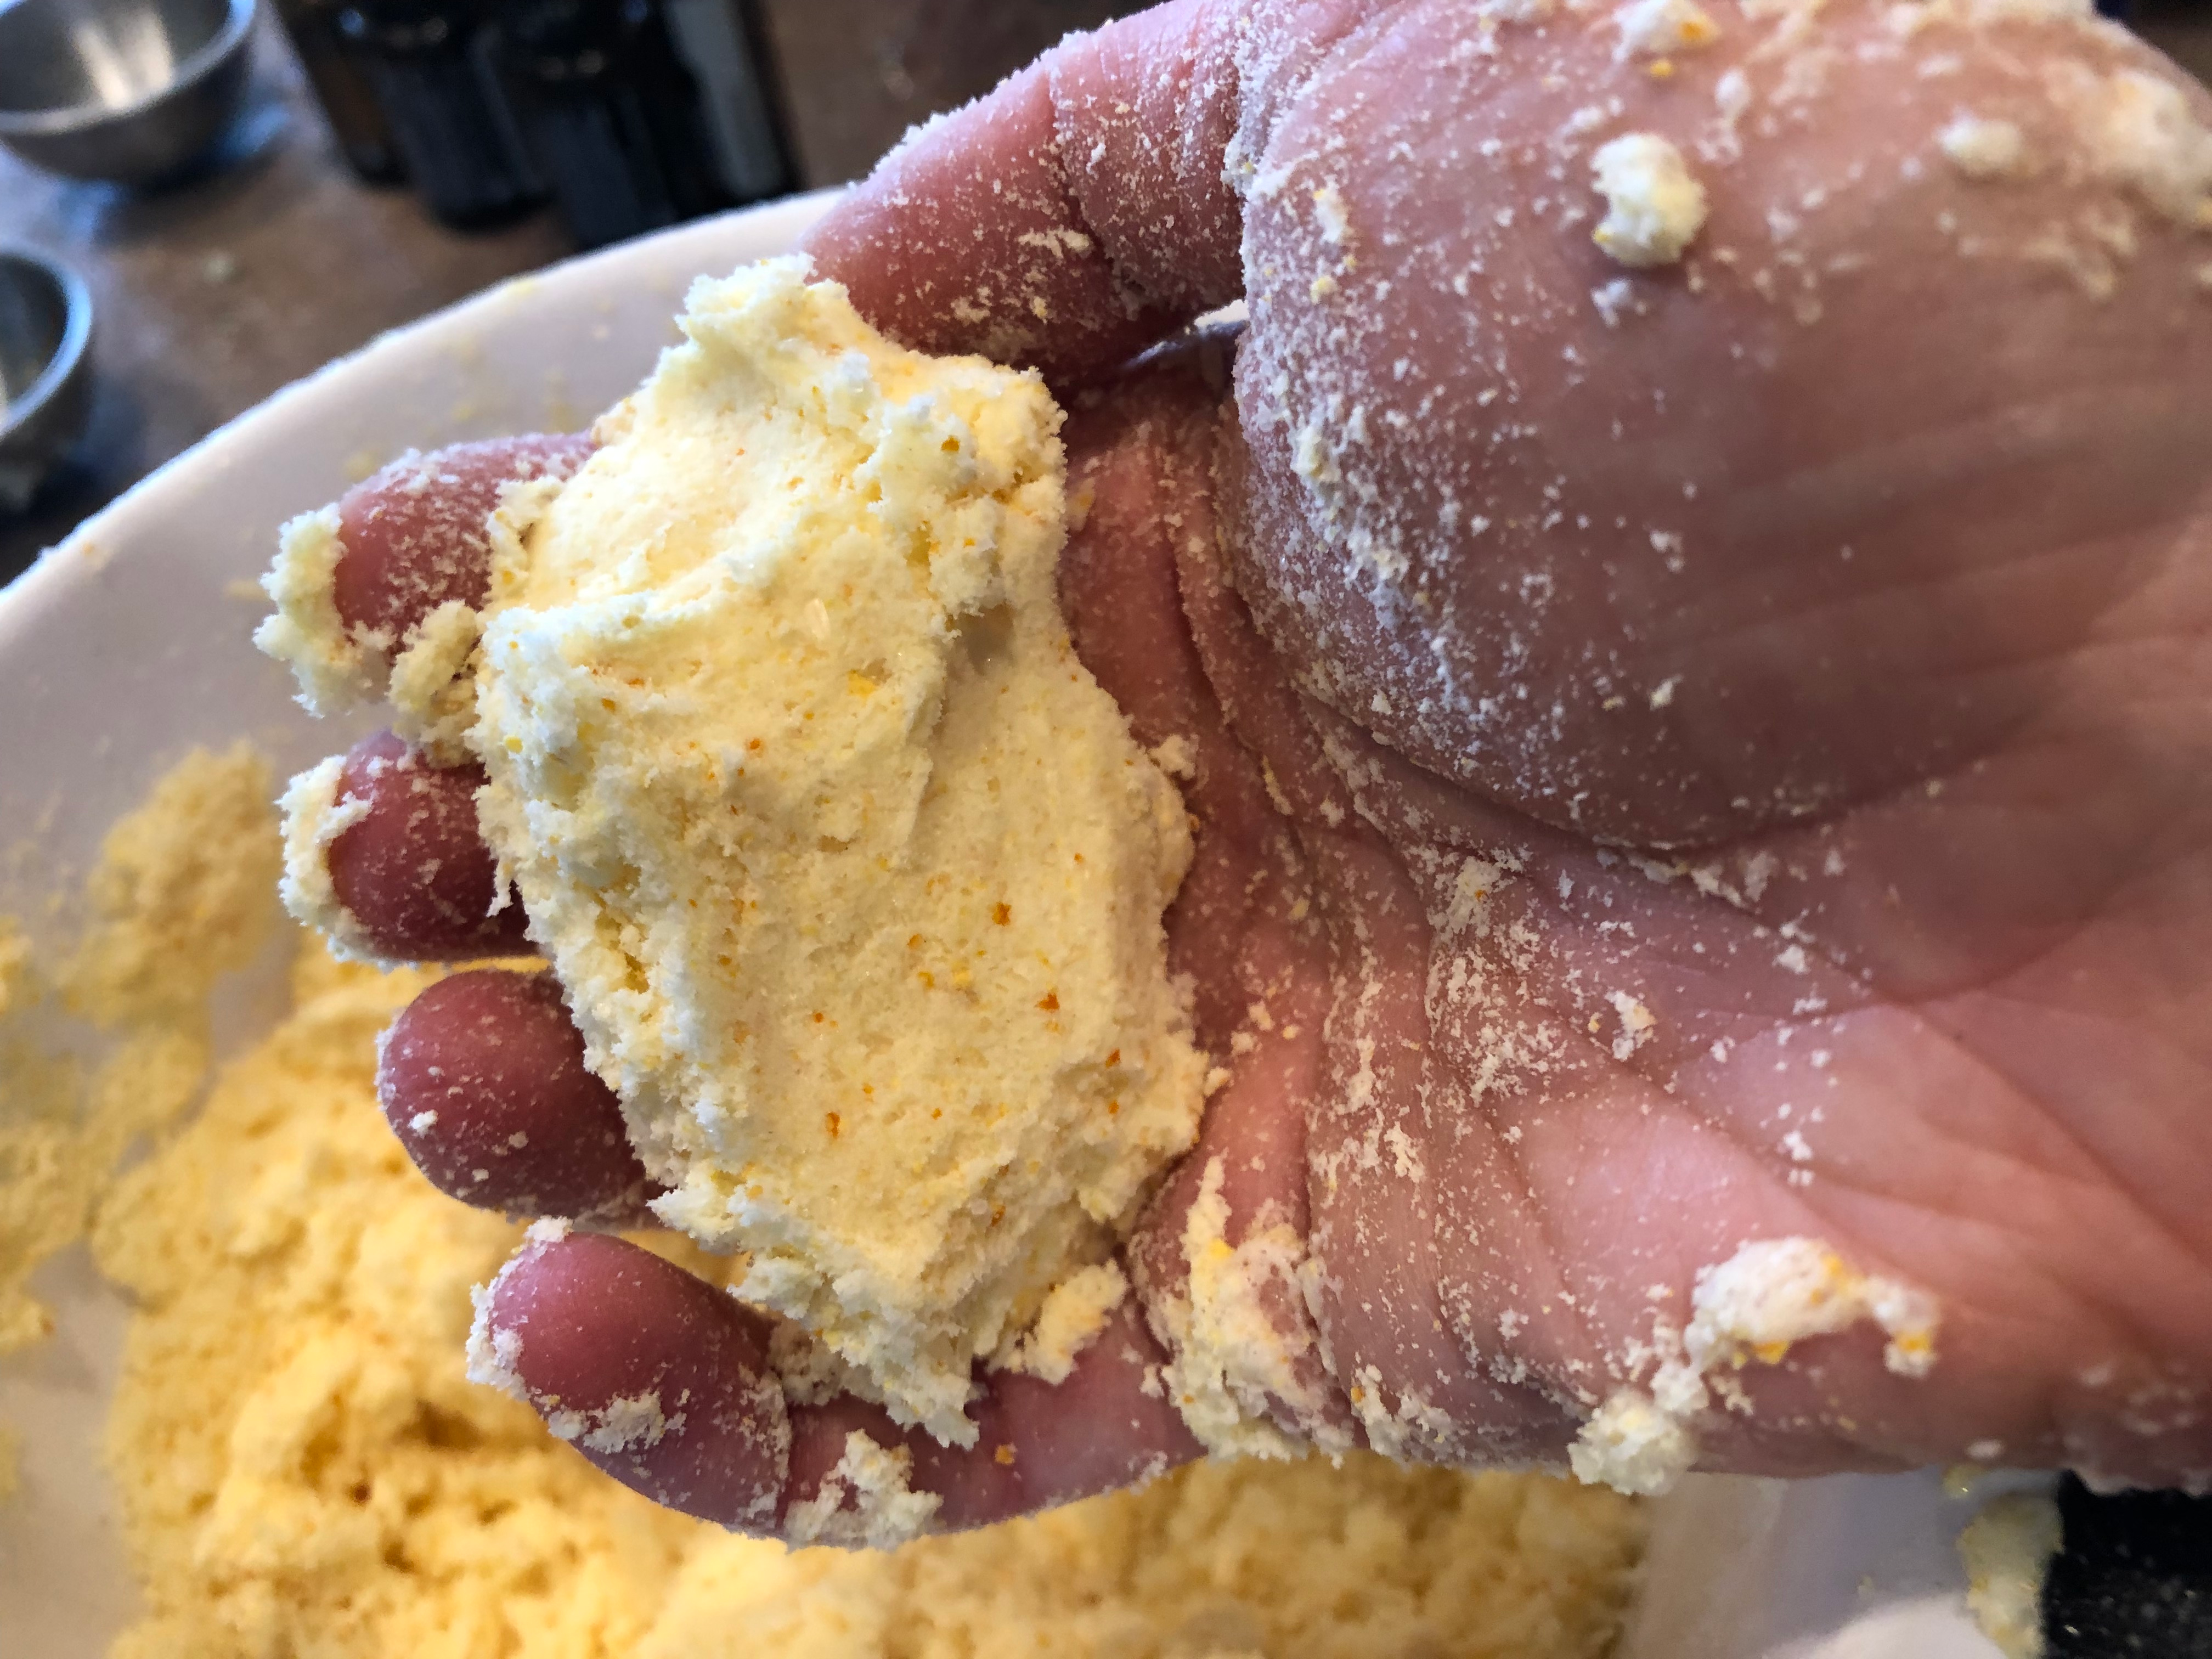 The consistency of the bath bomb mixture should be like wet sand.